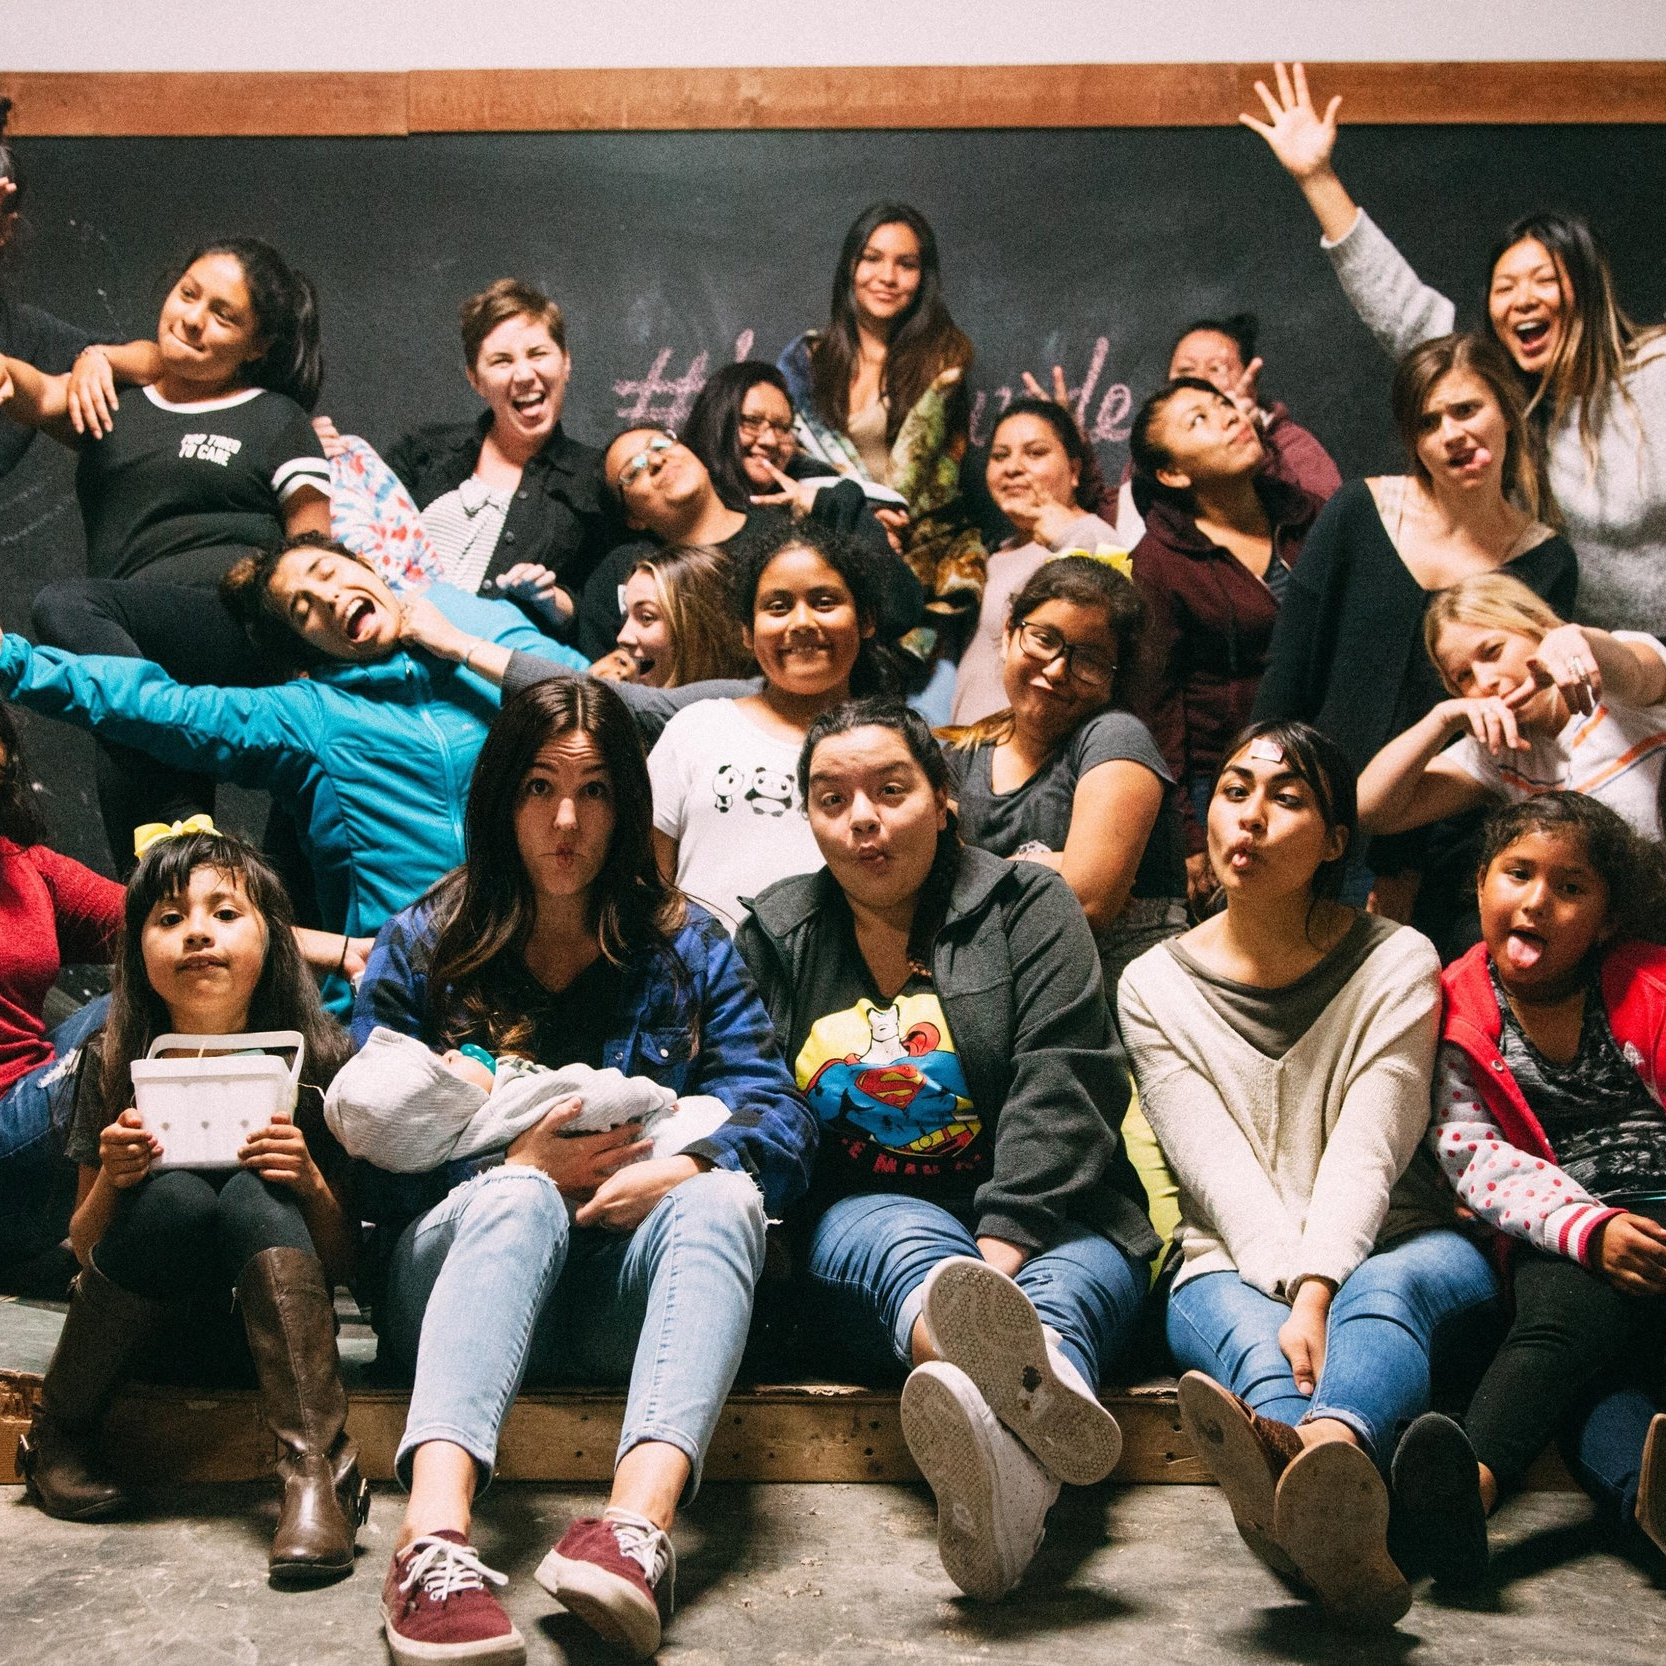 """Grounded - Every other Thursday evening is our """"All Girls Night."""" During this night, we strive to empower young girls and women to feel confident and to give them a voice in the community. We share a meal, good conversations, and always slide in a fun game or craft."""